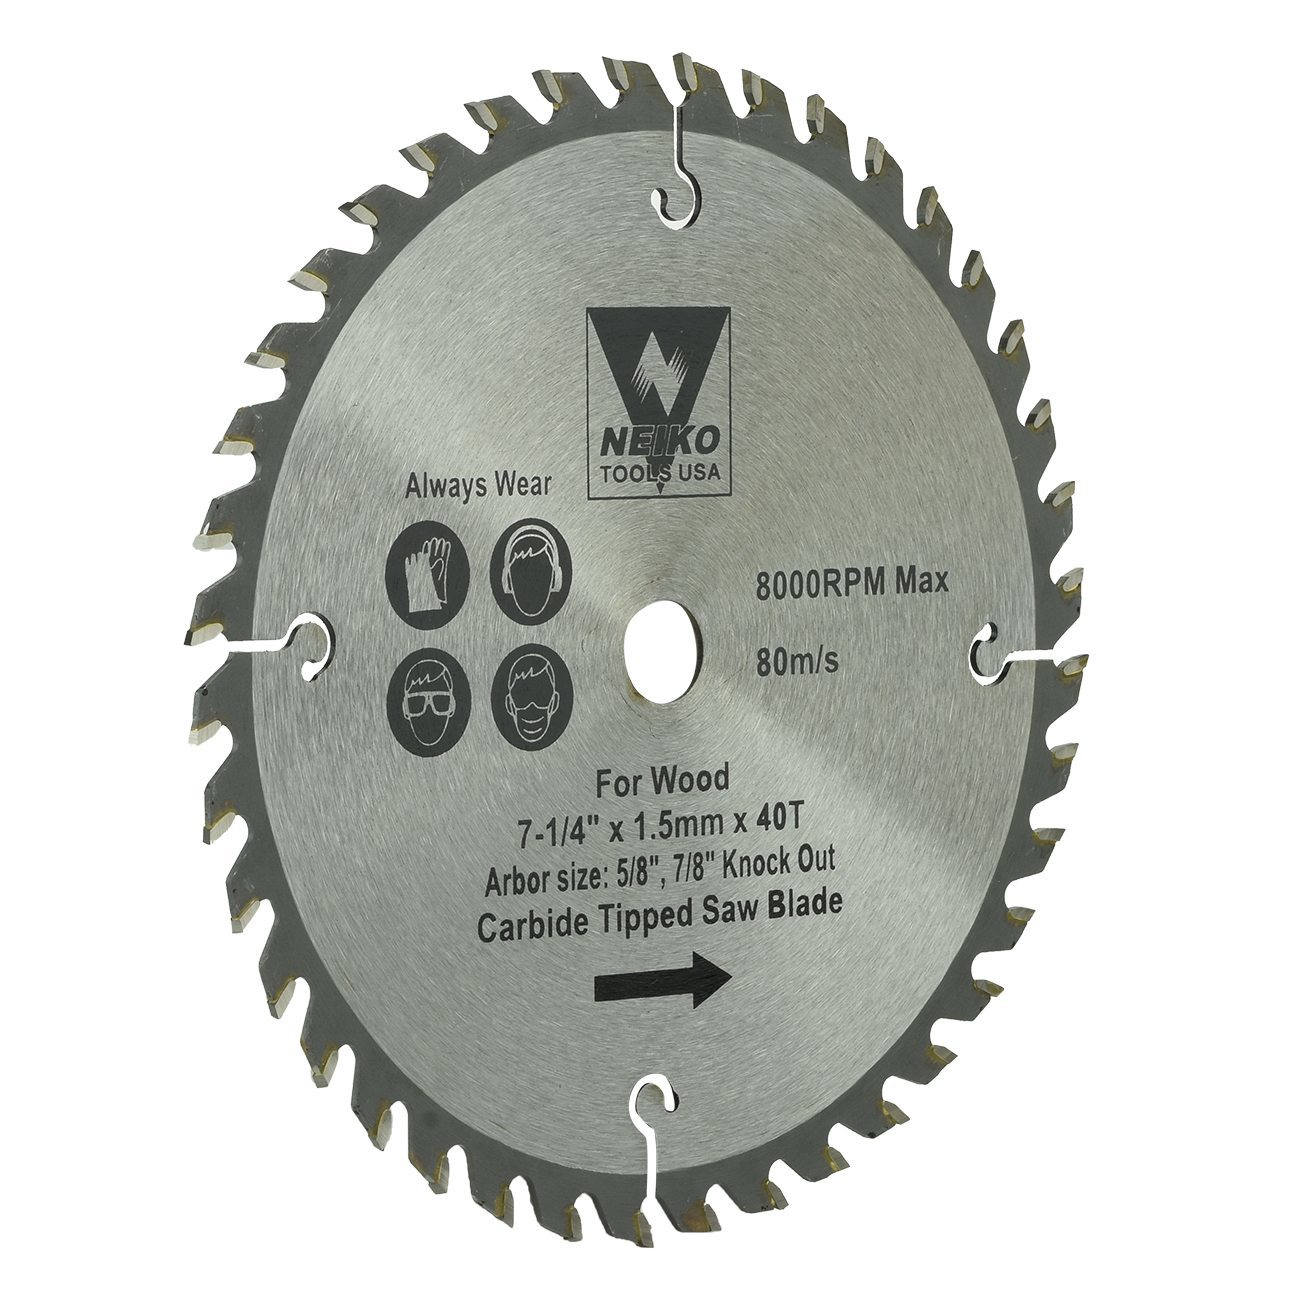 Table Saw Blades For Wood Carbide Tipped 7 1 4 Inch X 40 Teeth Ebay